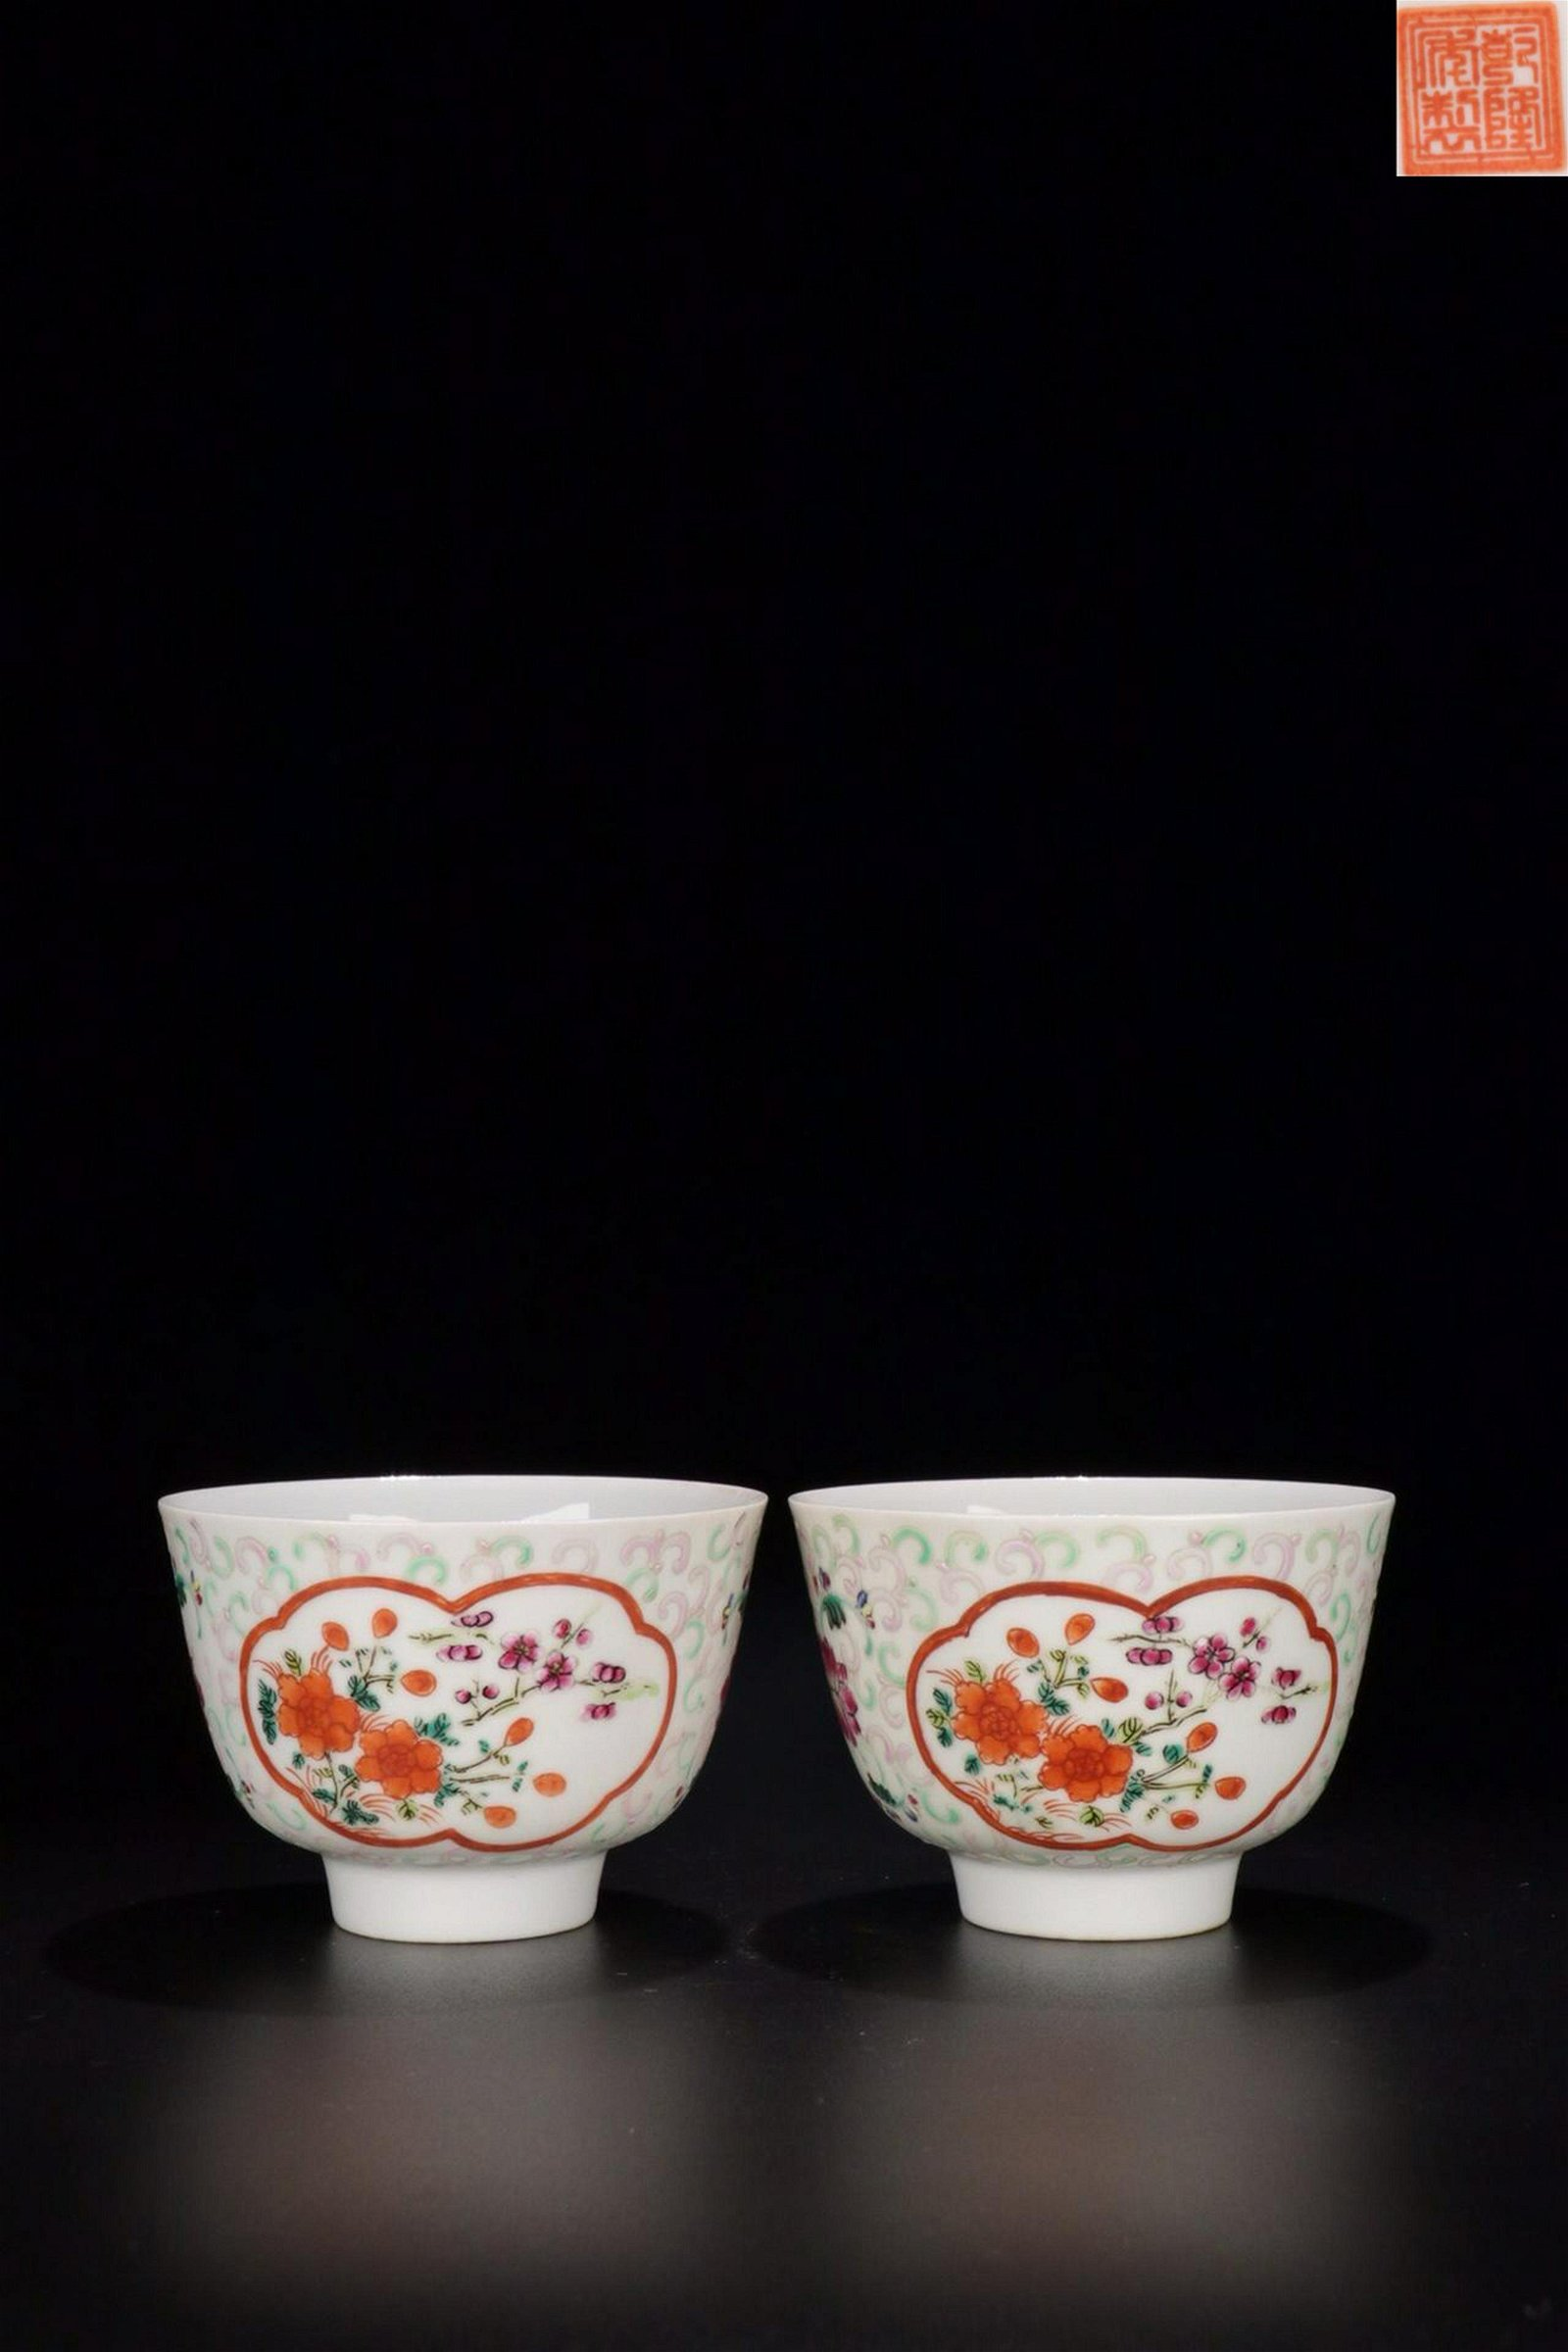 A PAIR OF FAMILLE ROSE FLOWER AND BIRD PATTERN CUPS